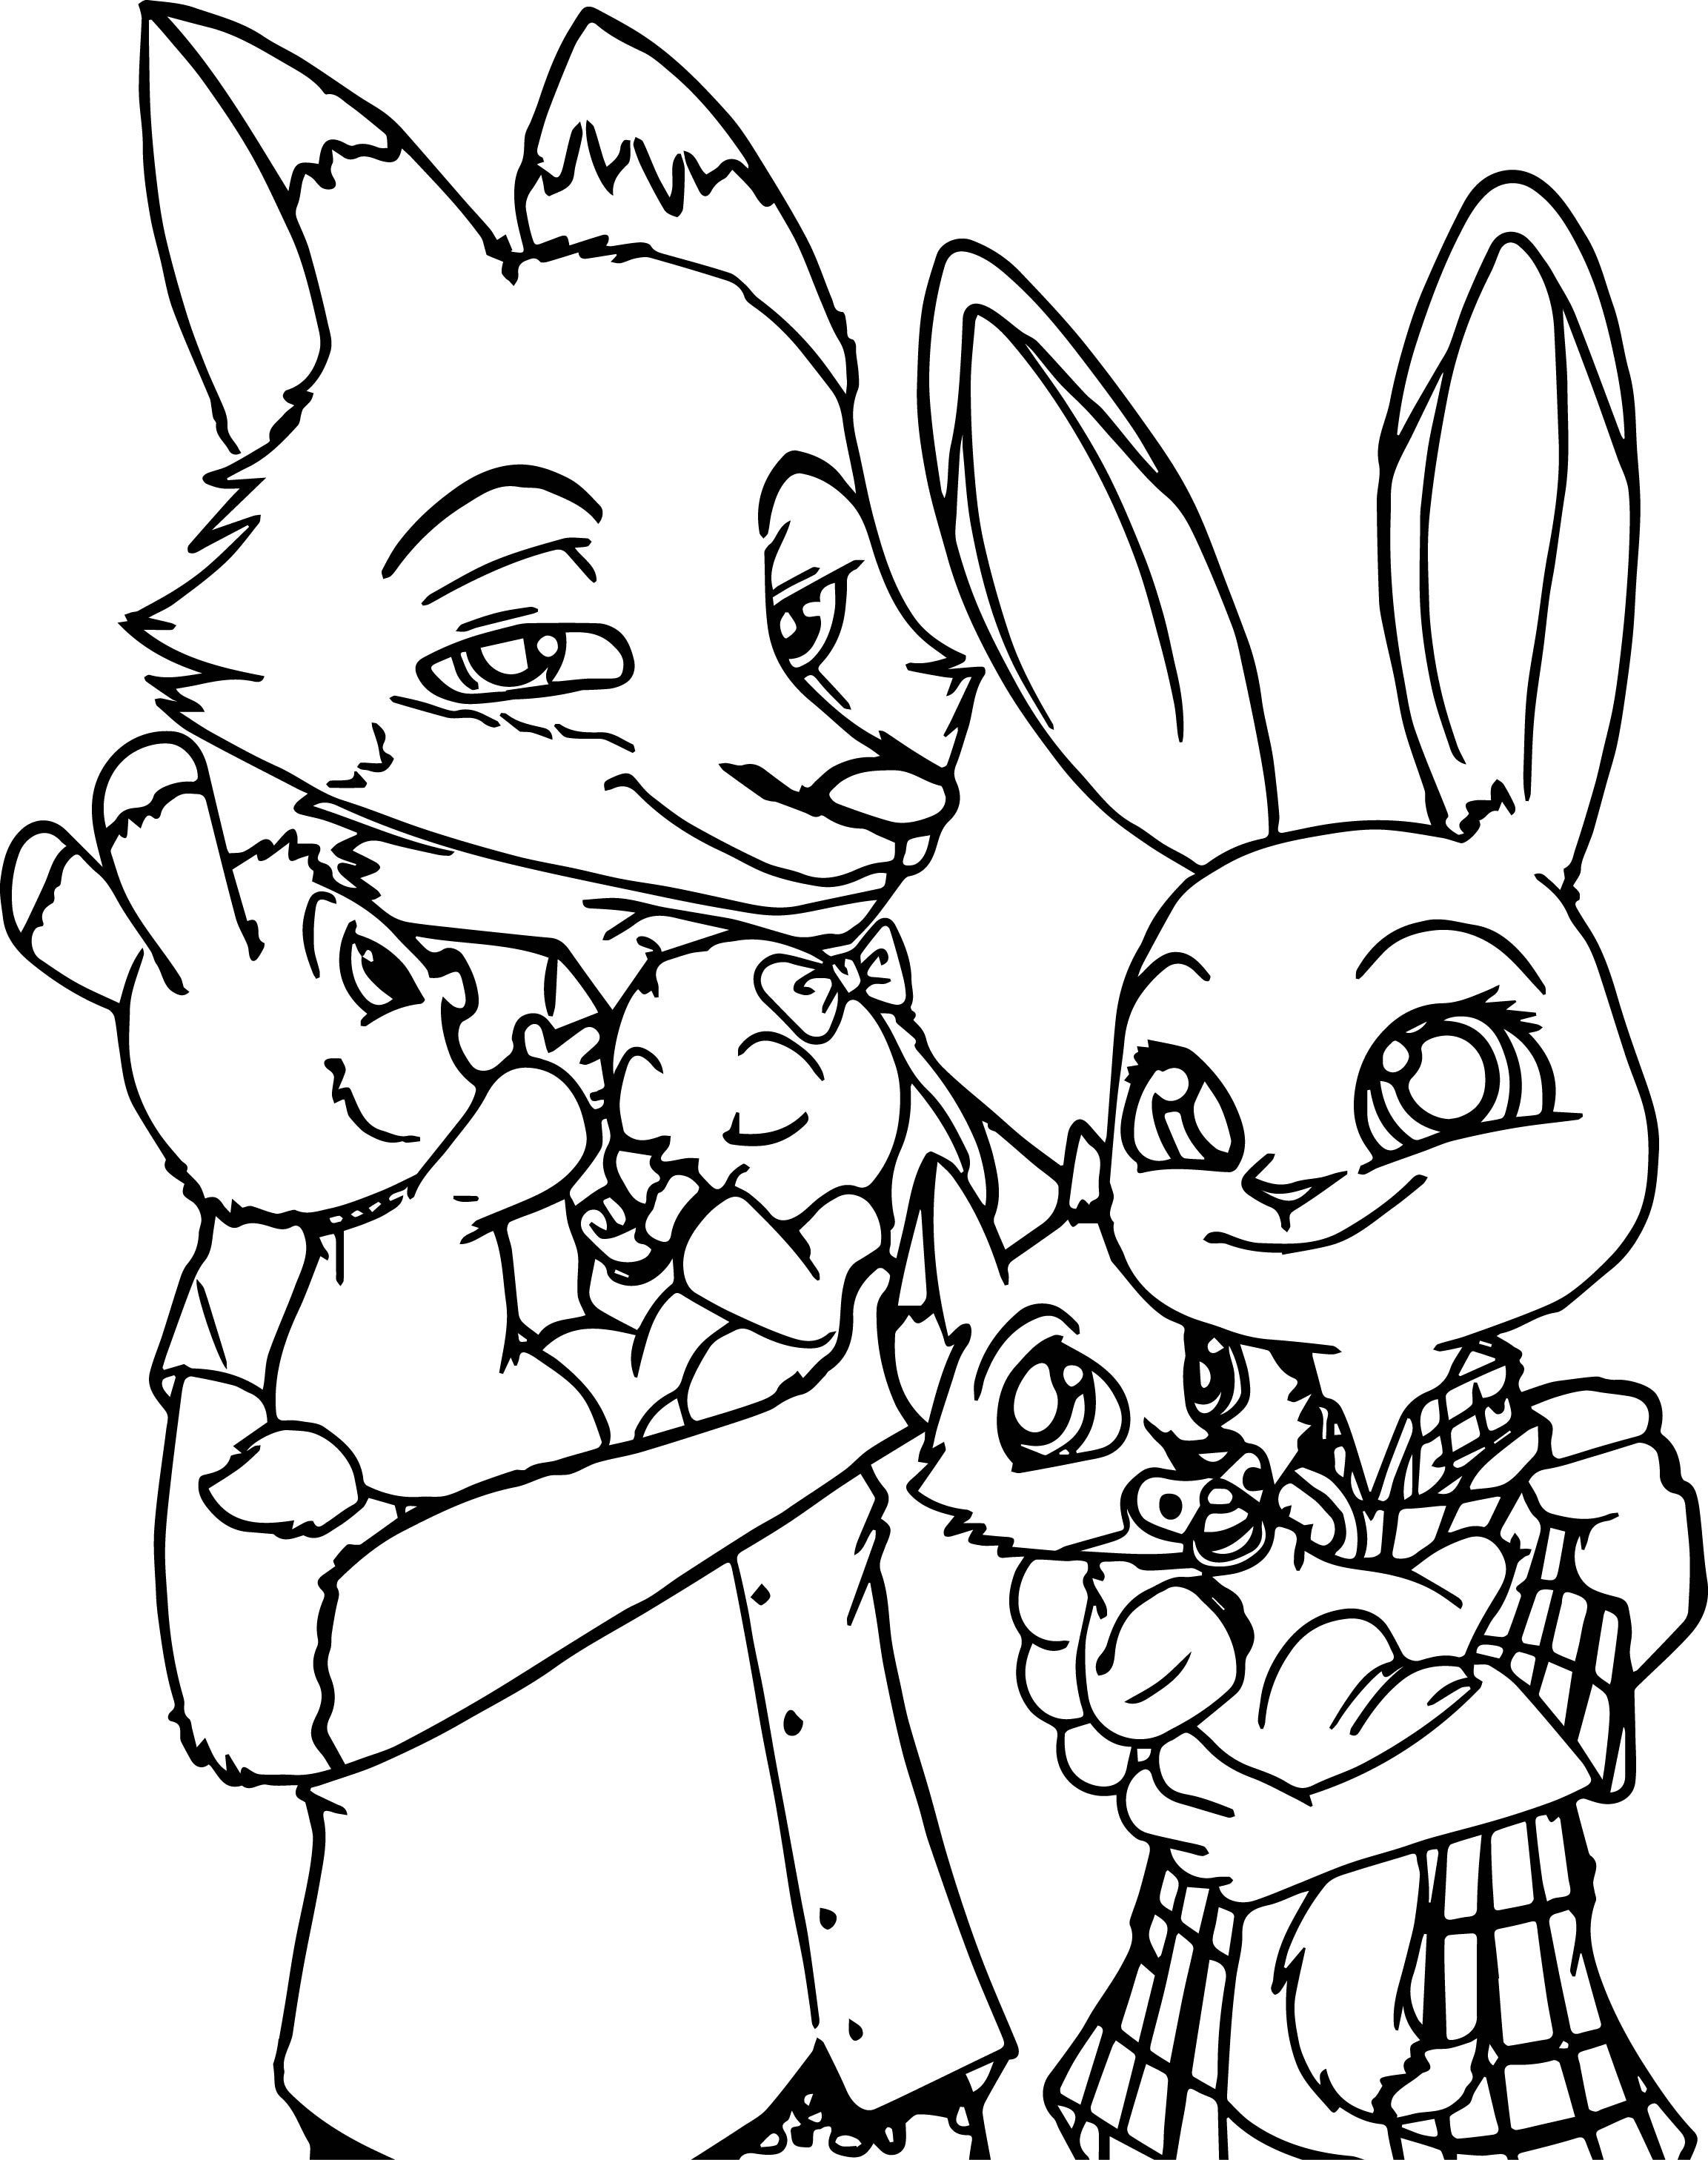 foxes coloring pages 6 fox coloring pages explode your thoughts and make you coloring pages foxes